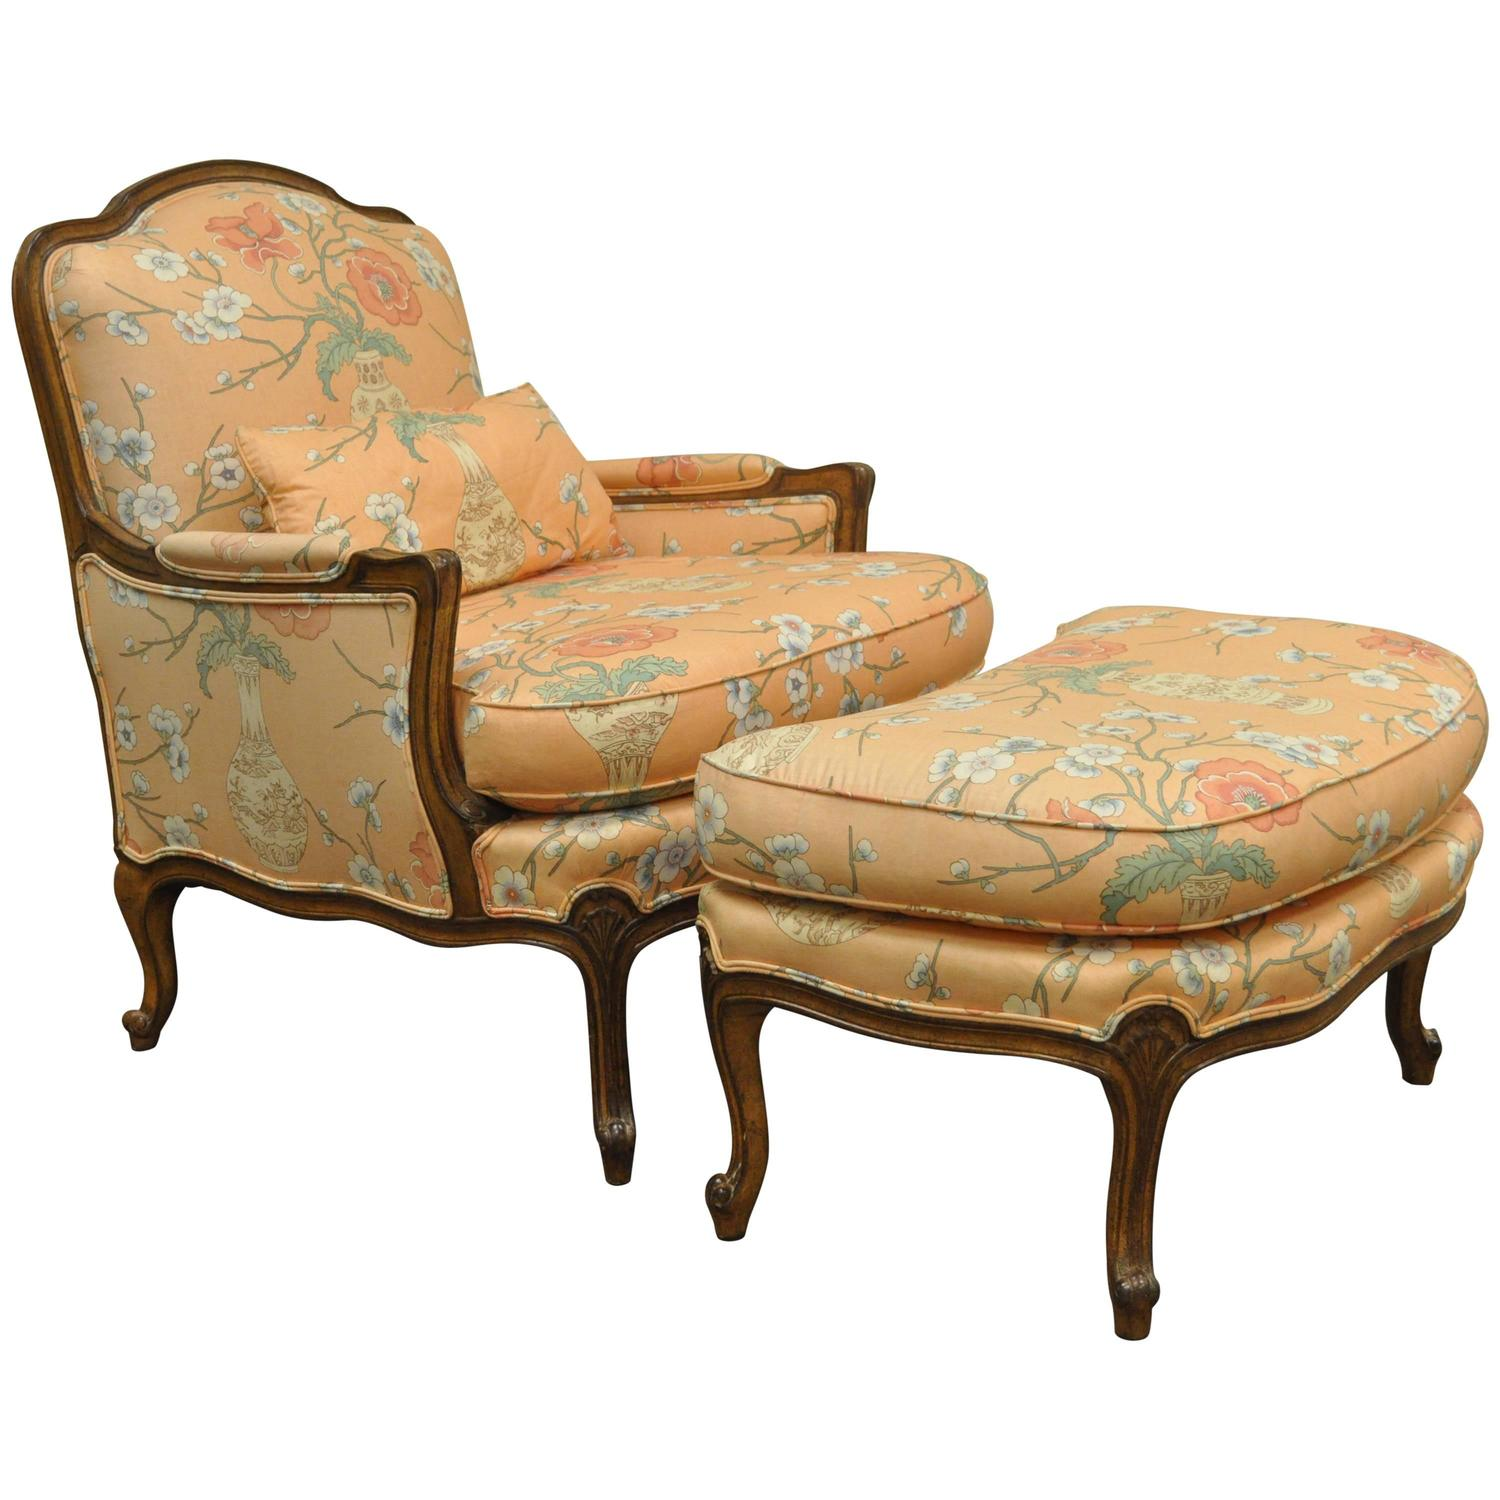 french provincial chair and ottoman original yankee stadium chairs 1950s country louis xv style shell carved bergere